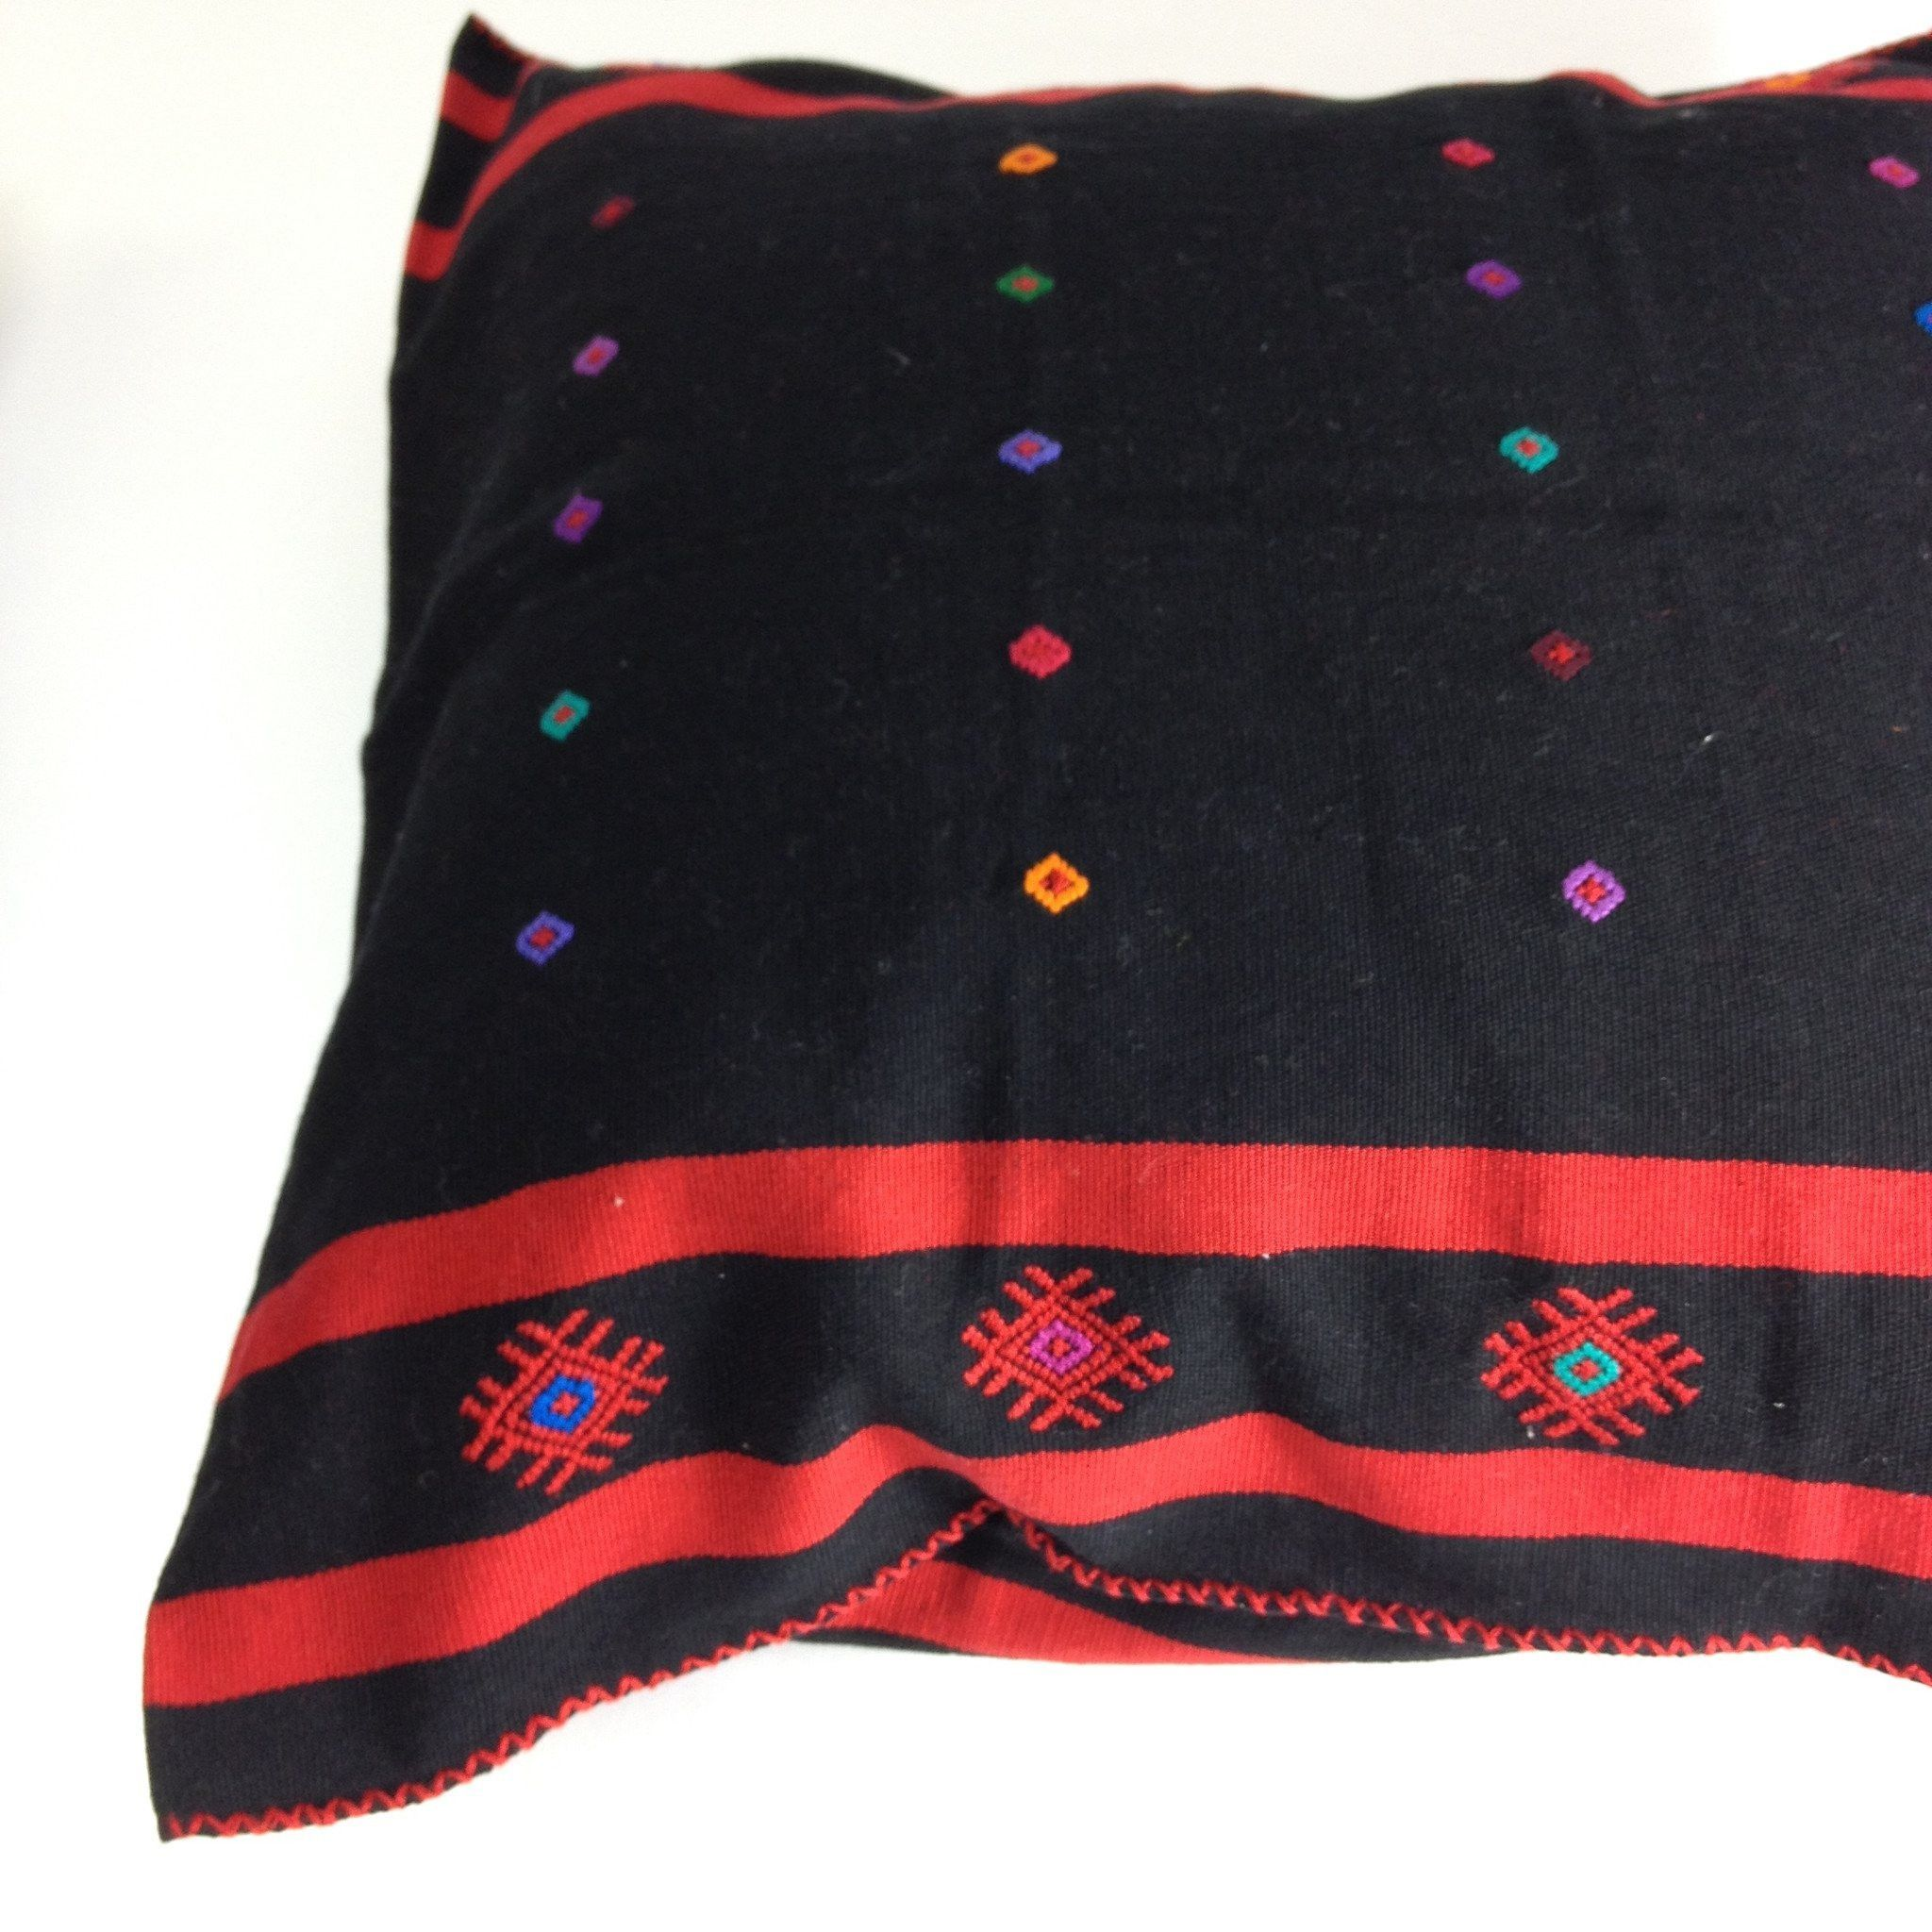 Black with Red Embroidered Pillow Cover from Chiapas, Mexico